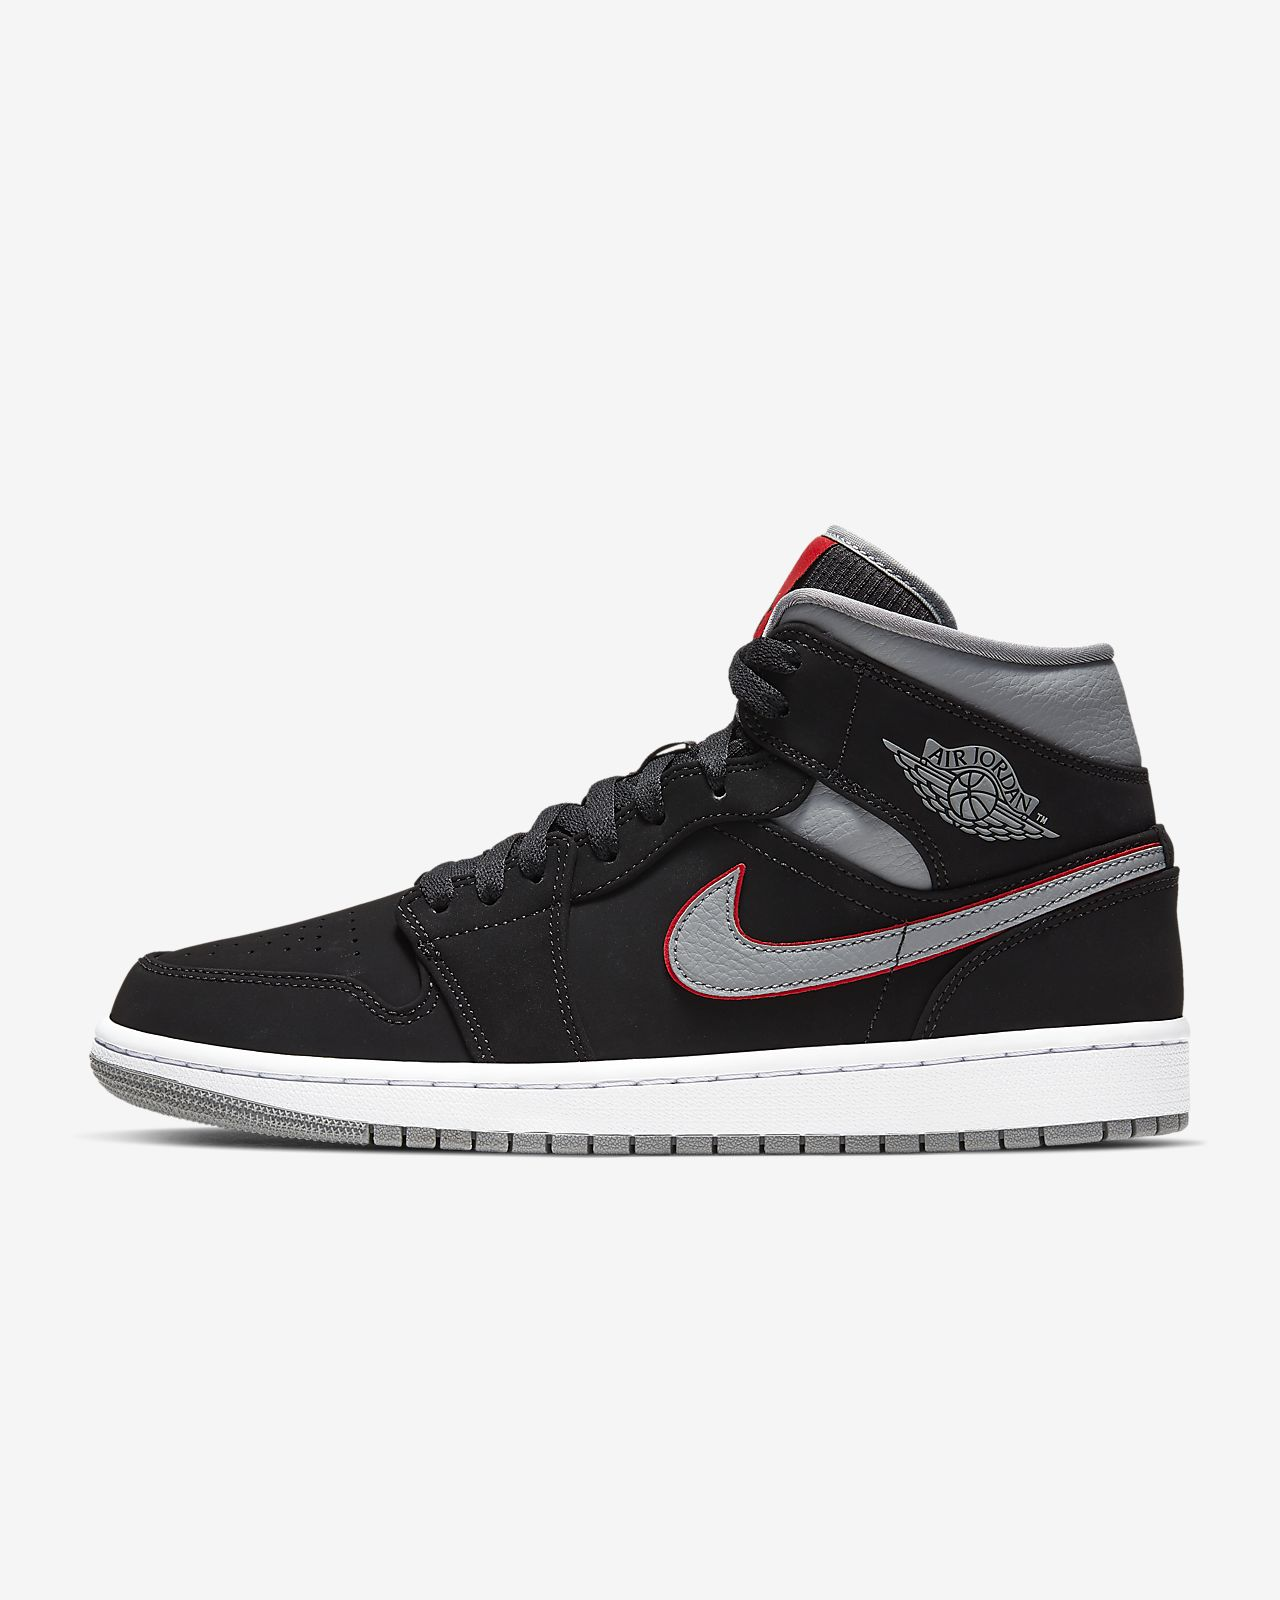 6f8dc02c9443 Air Jordan 1 Mid Men s Shoe. Nike.com GB